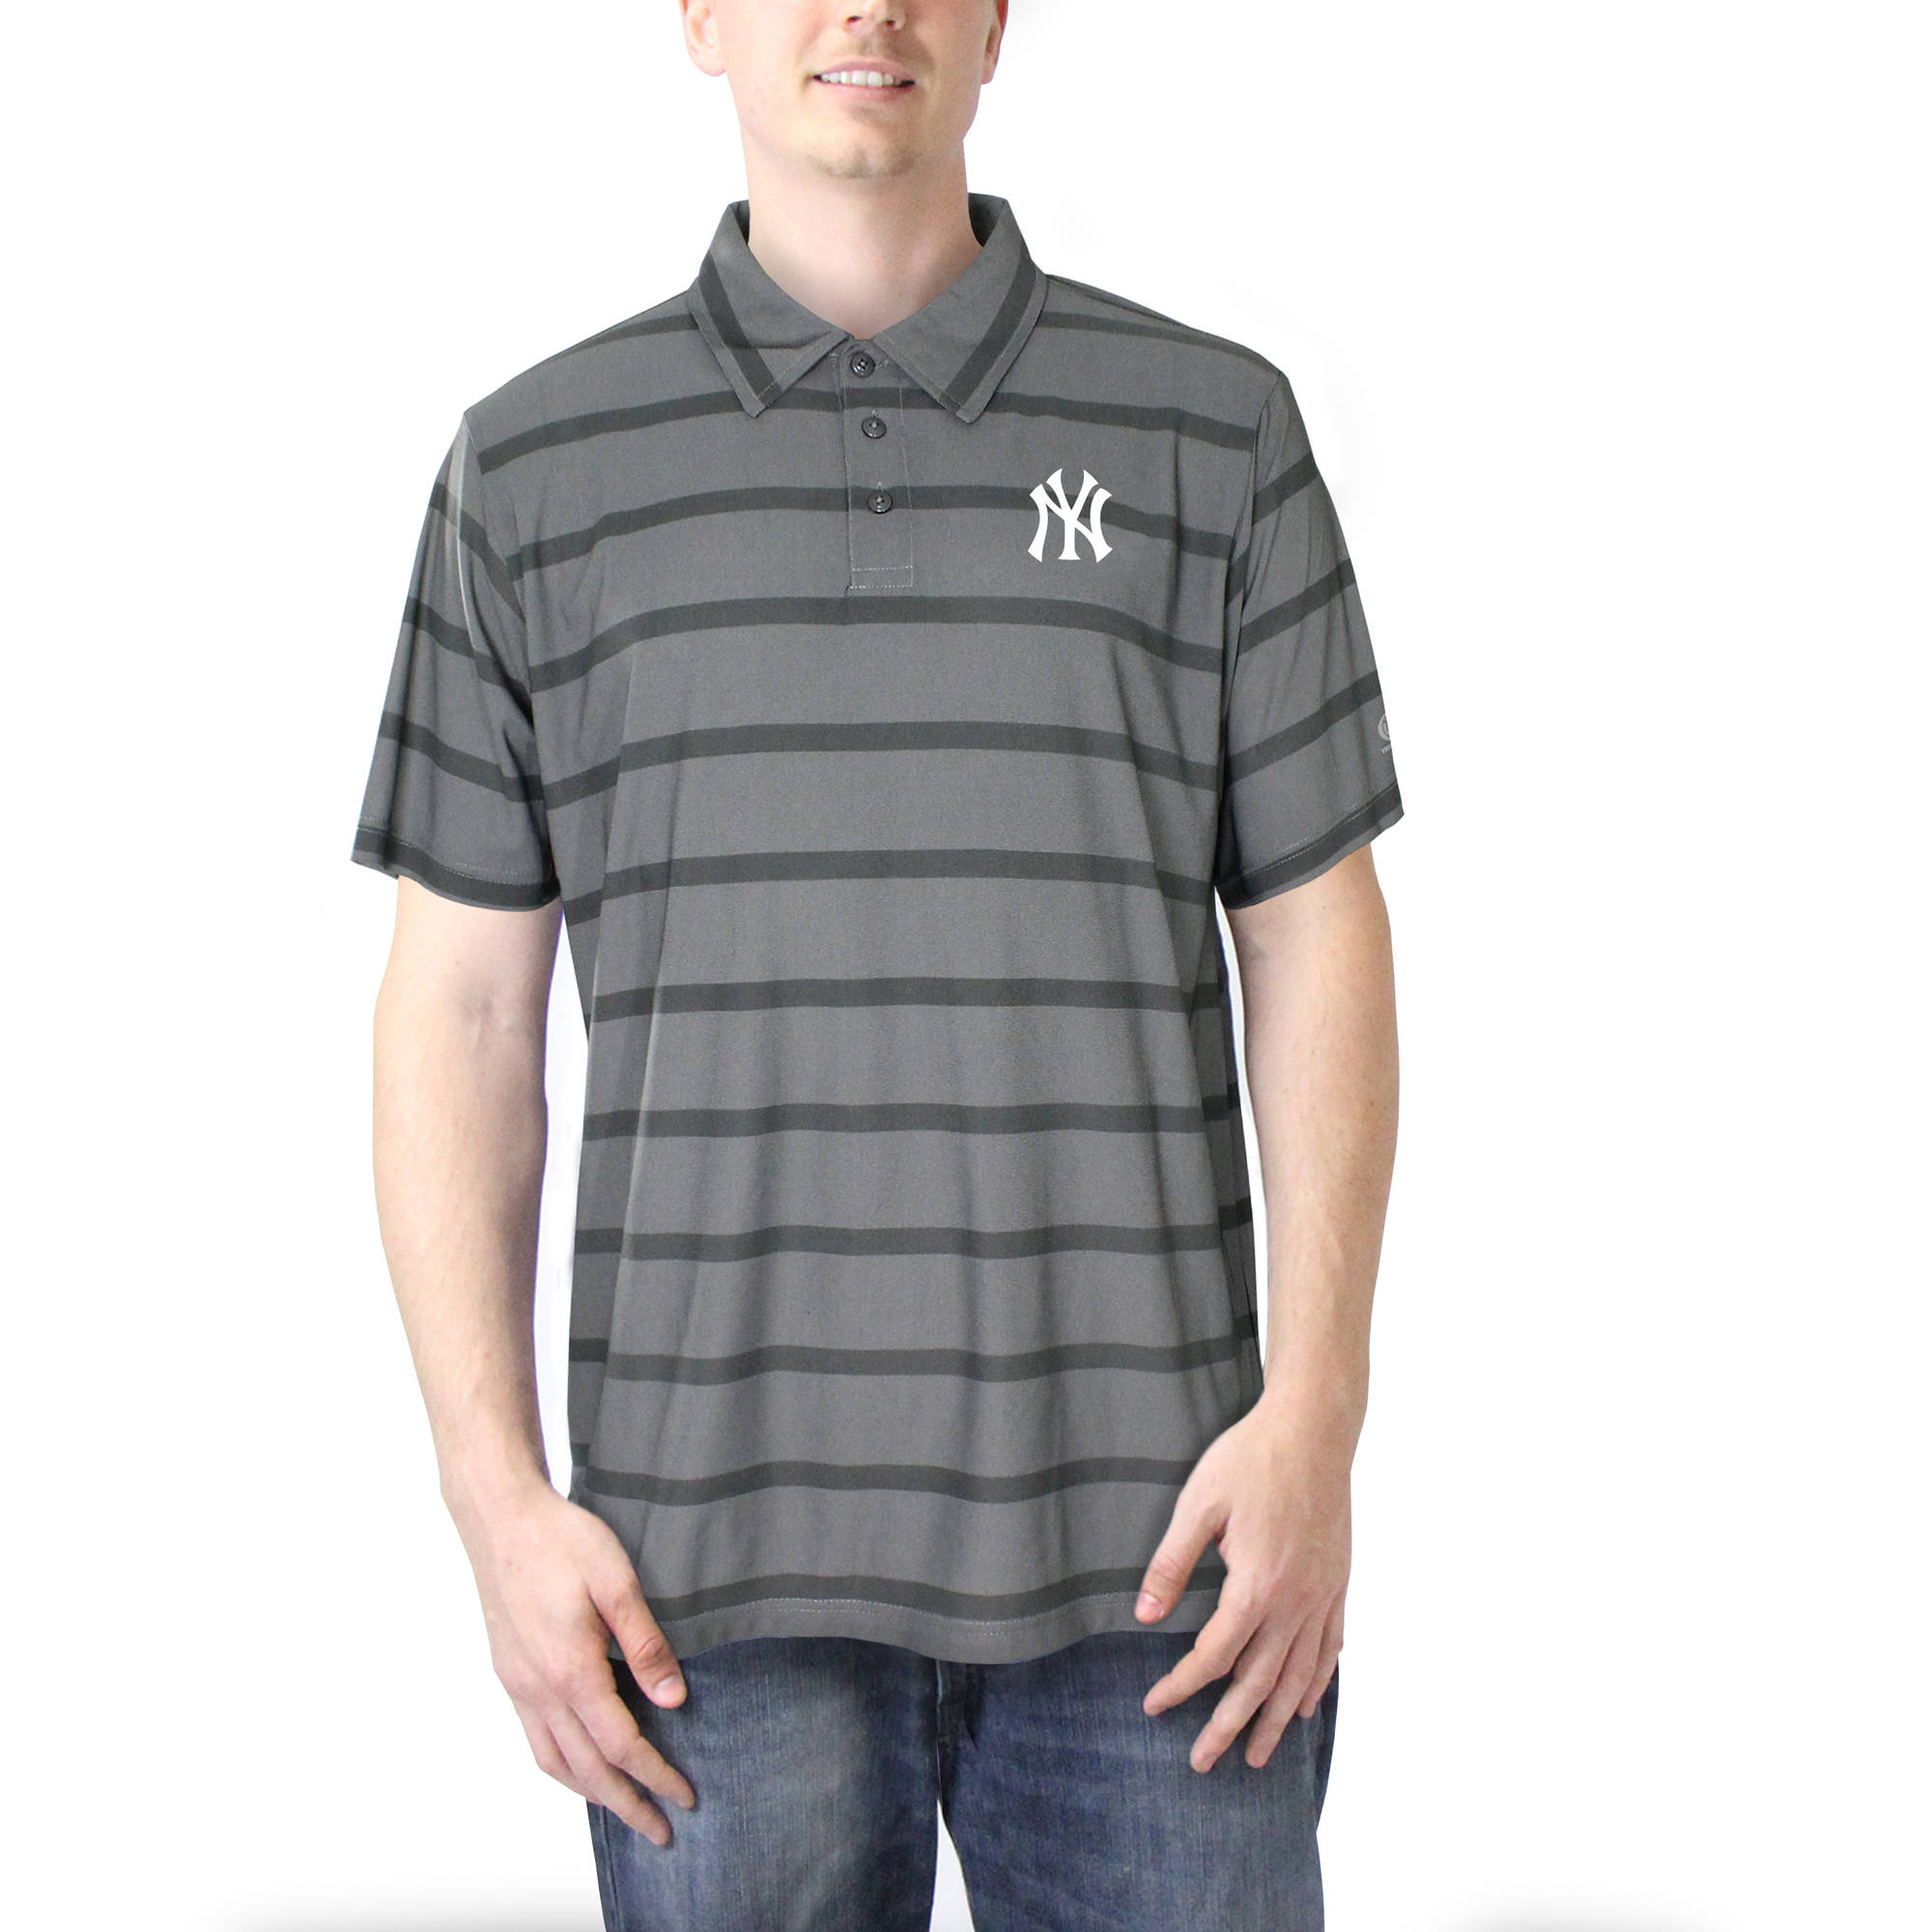 New York Yankees Men's Charcoal Yarn Dye Stripe Polo